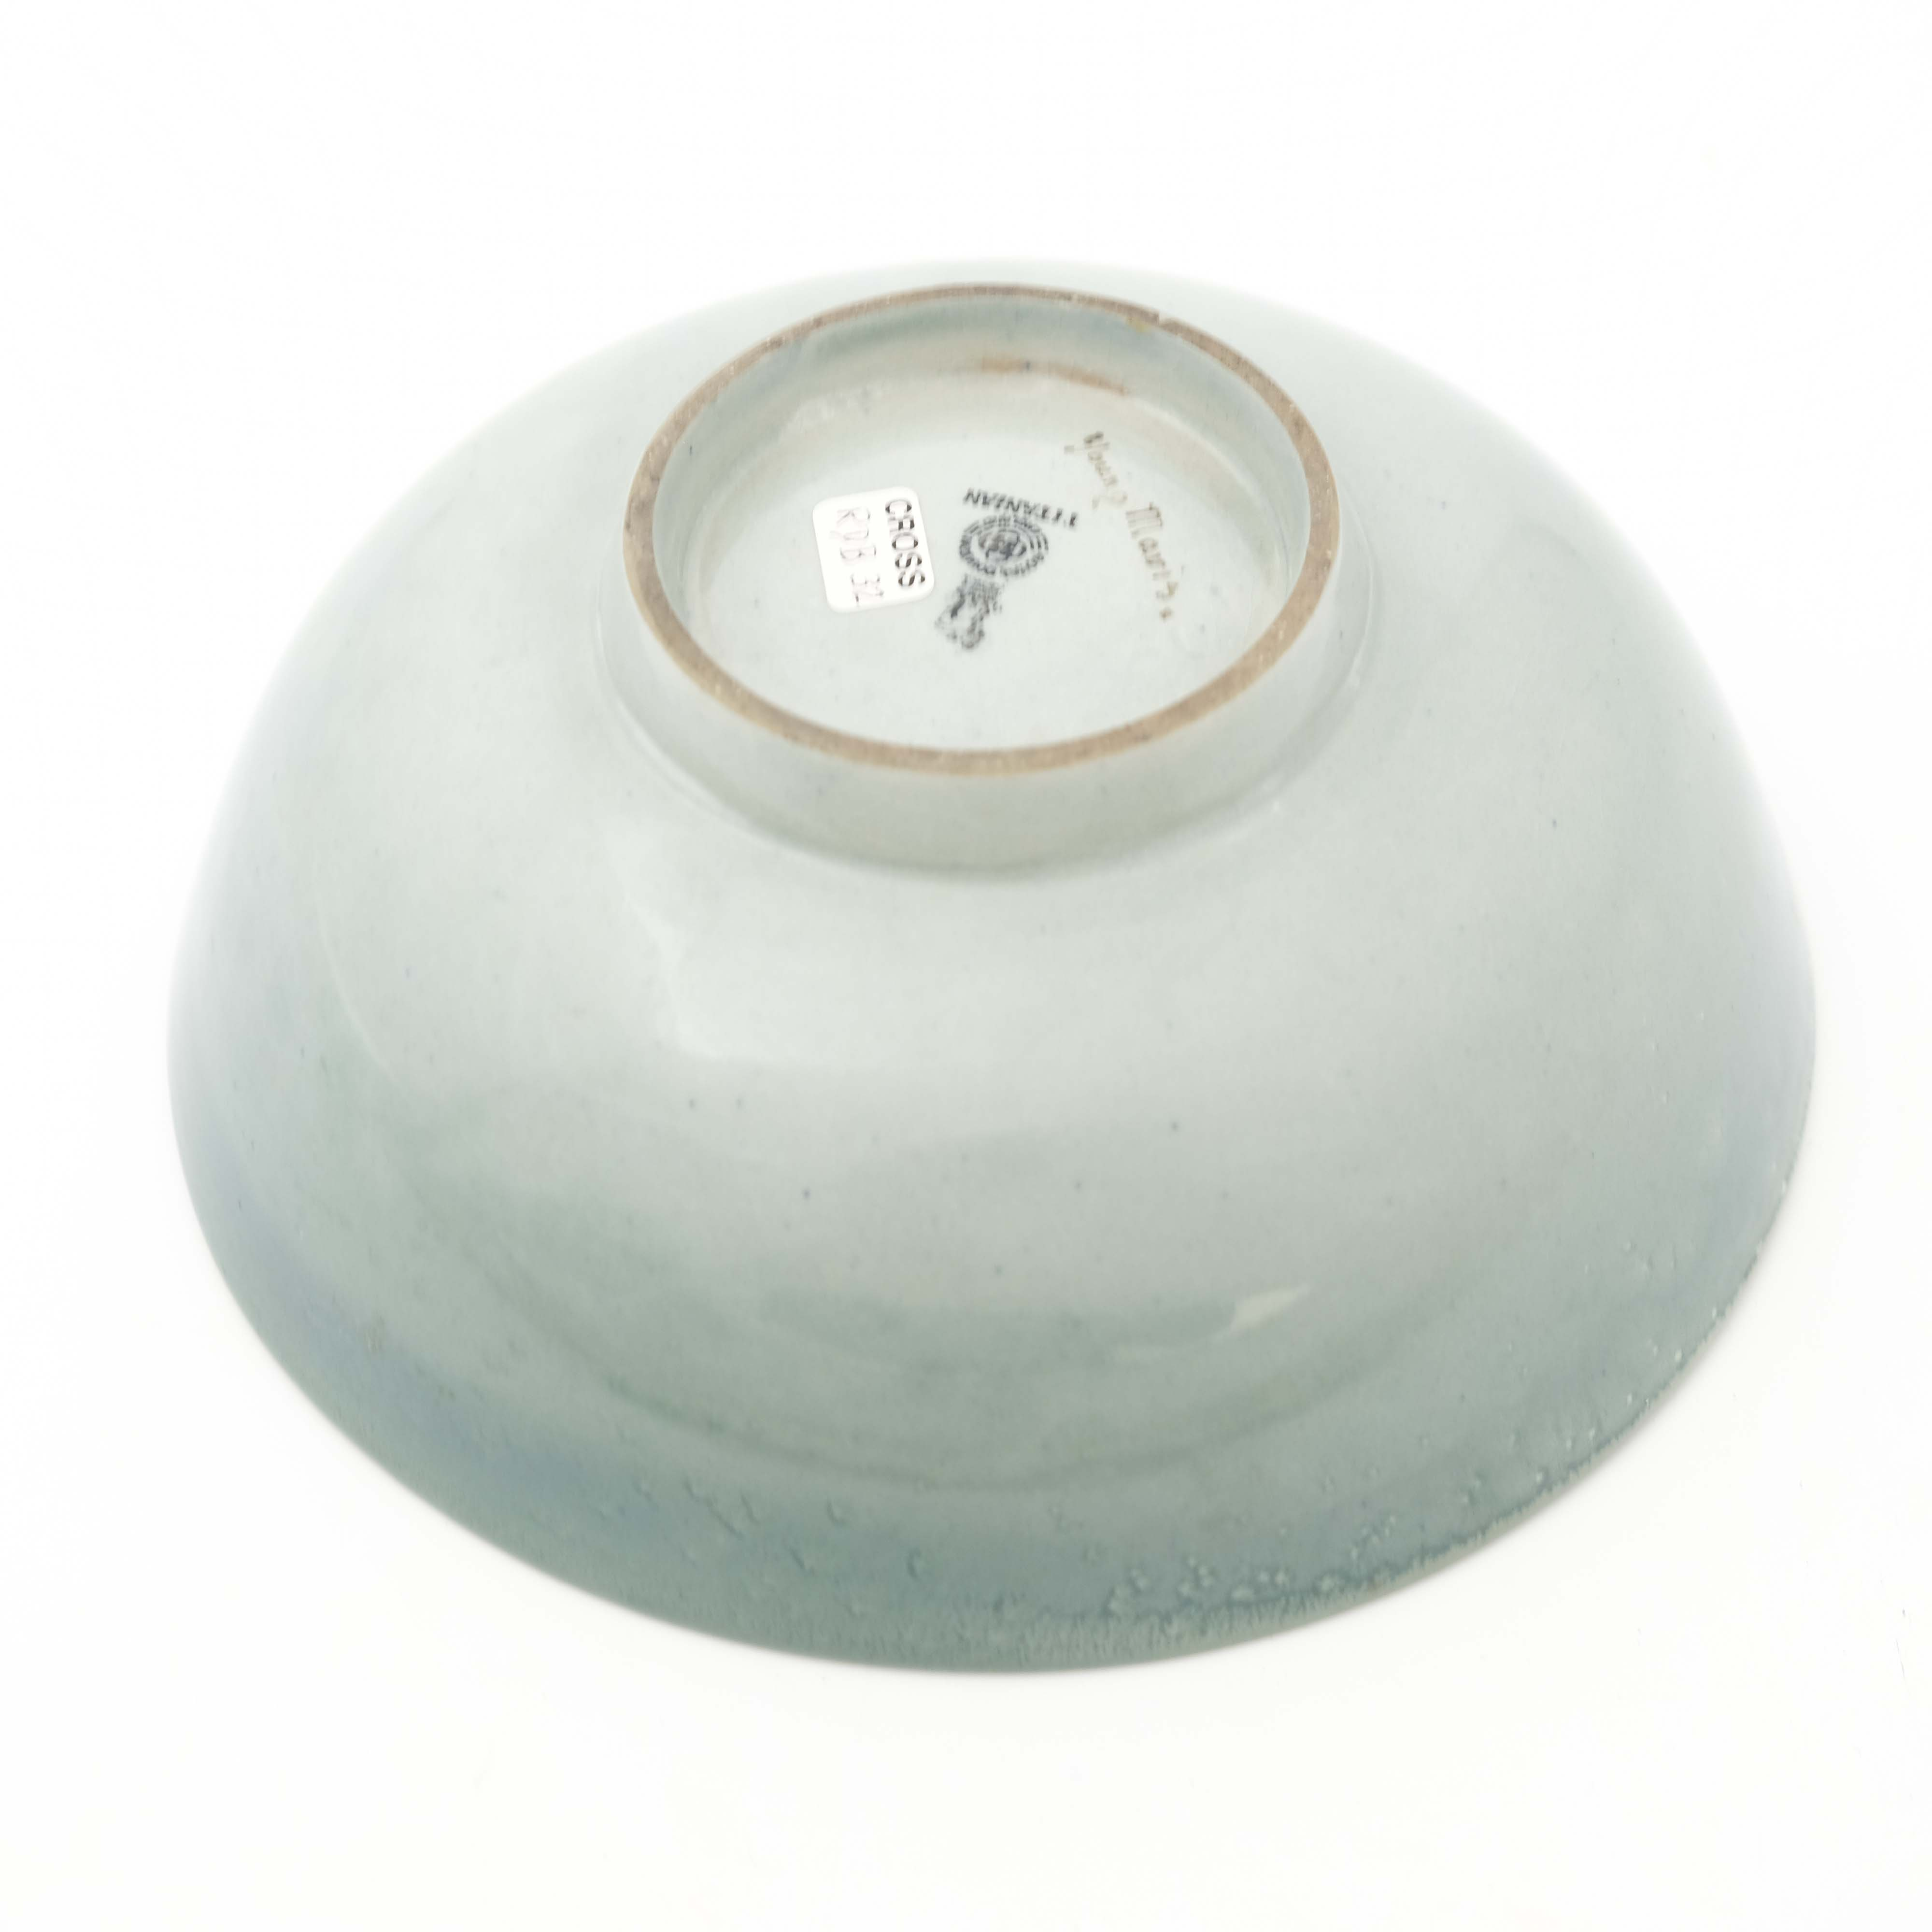 Harry Allen for Royal Doulton, a Titanian Young Ma - Image 3 of 4